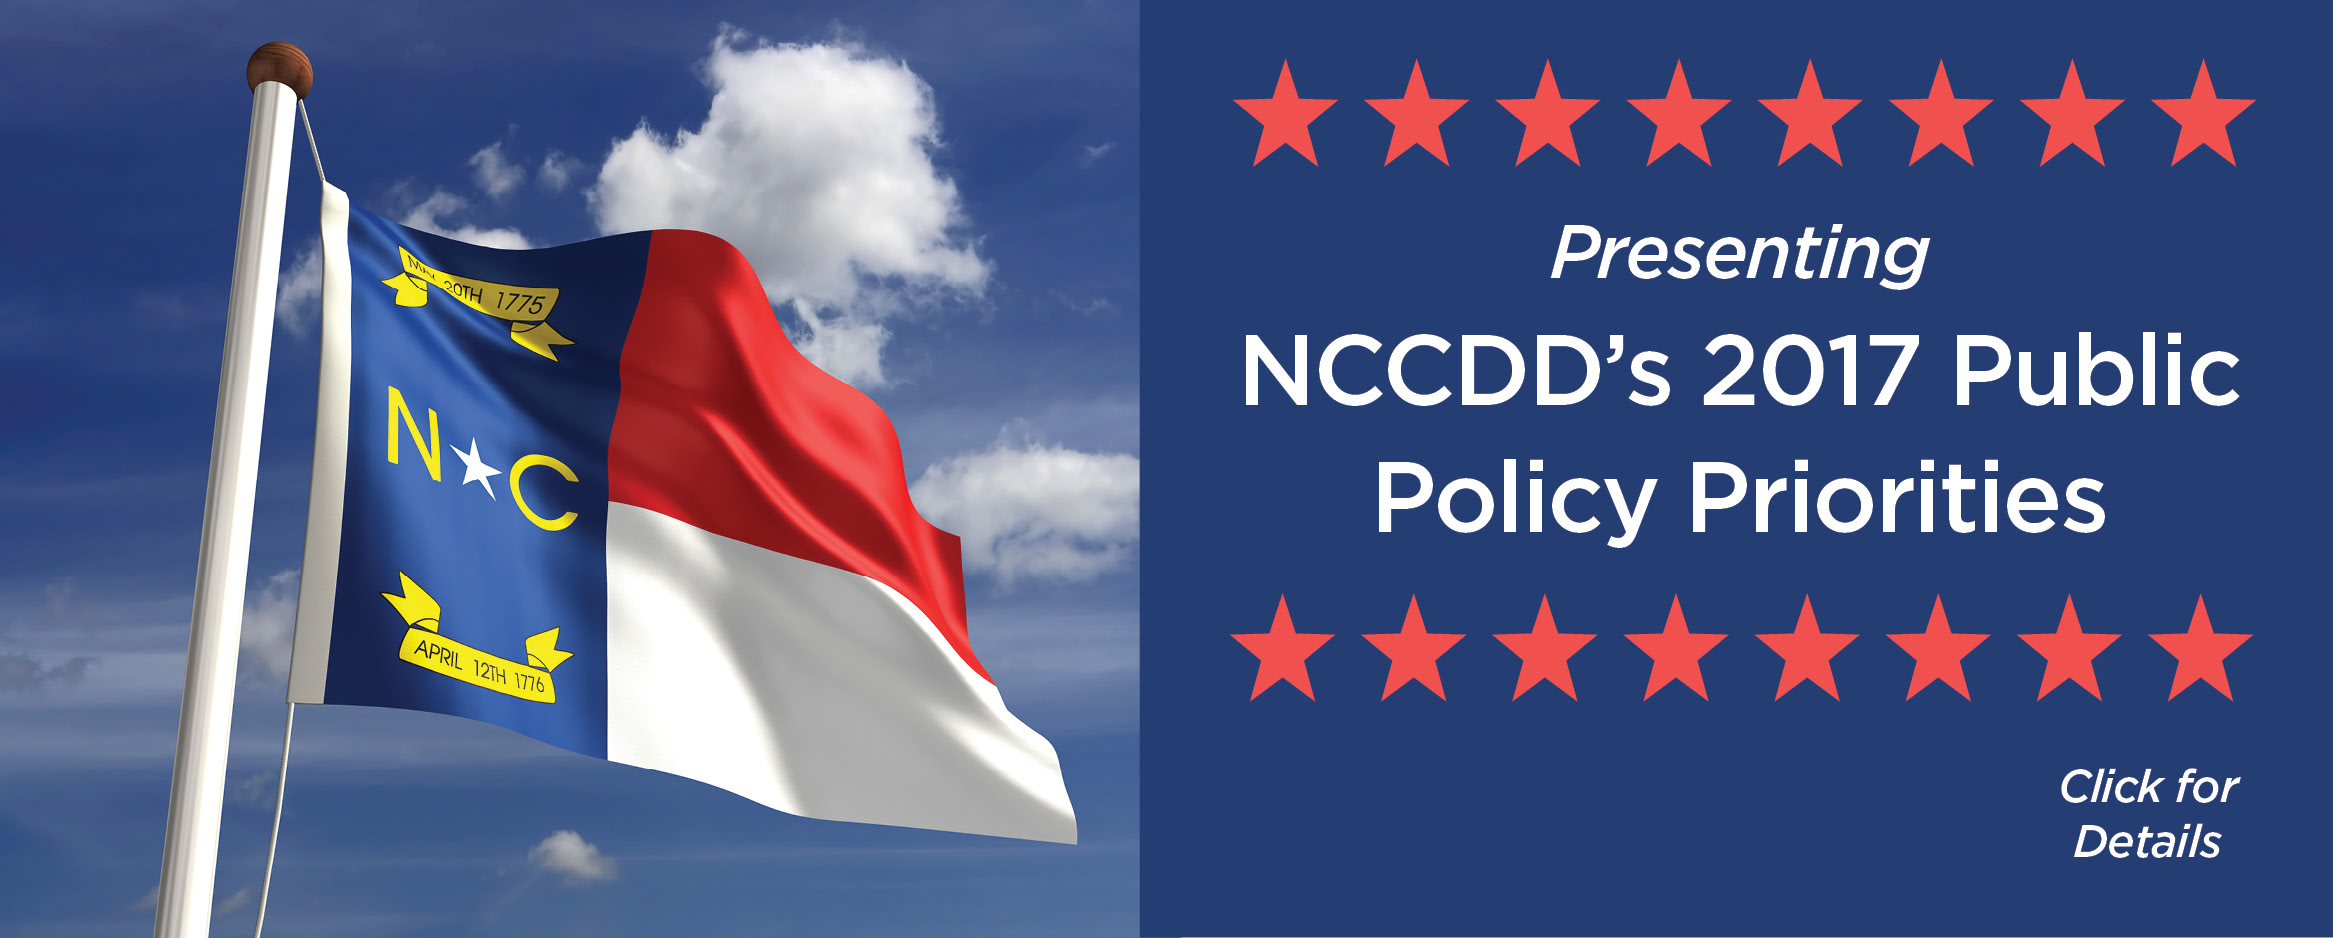 Presenting NCCDD's 2017 Public Policy Priorities. Click here for details.